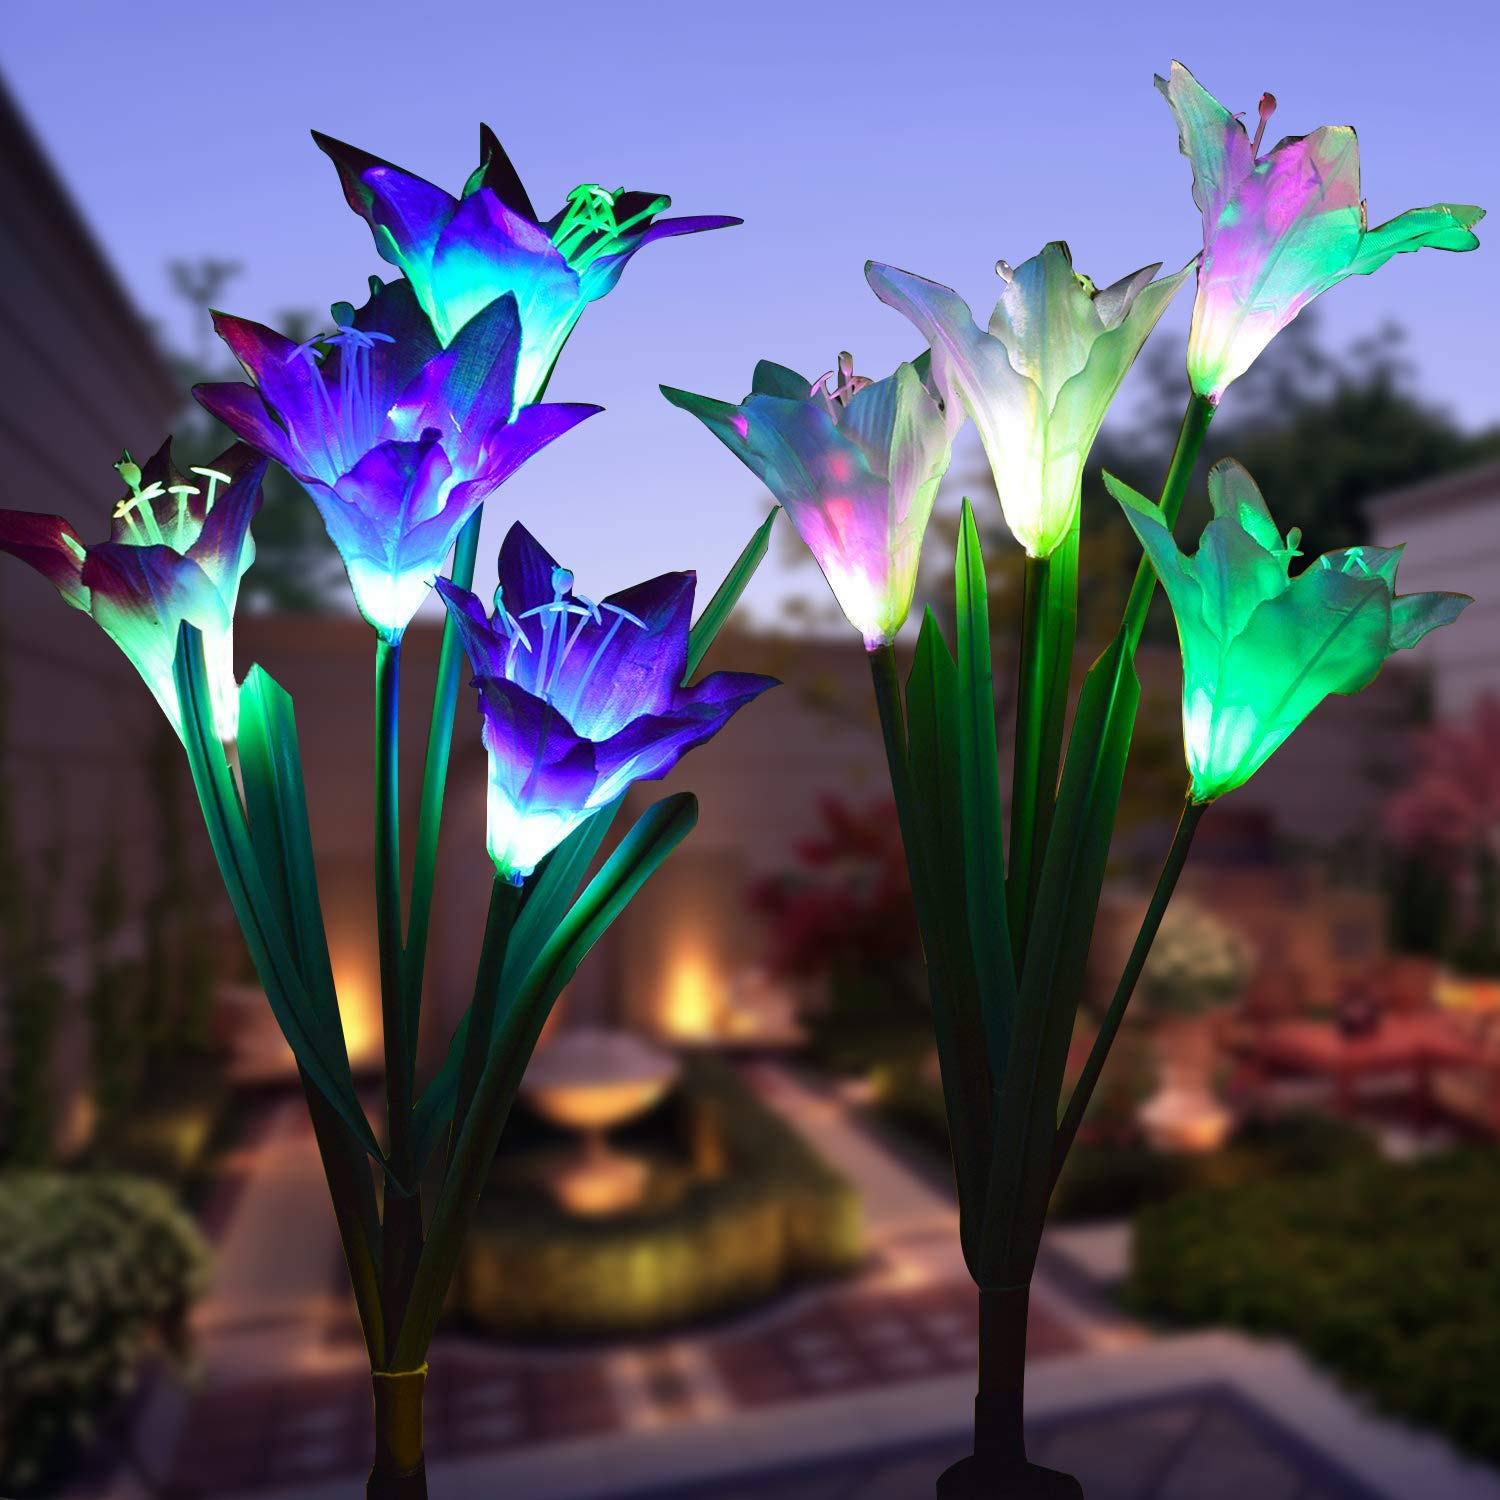 WOHOME Outdoor Solar Garden Stake Lights 2 Pack Solar Flower Lights with 8 Lily Flower,Multi-Color Changing LED Lily Solar Powered Lights for Patio,Yard Decoration,Bigger Flower and Wider Solar Panel by WOHOME